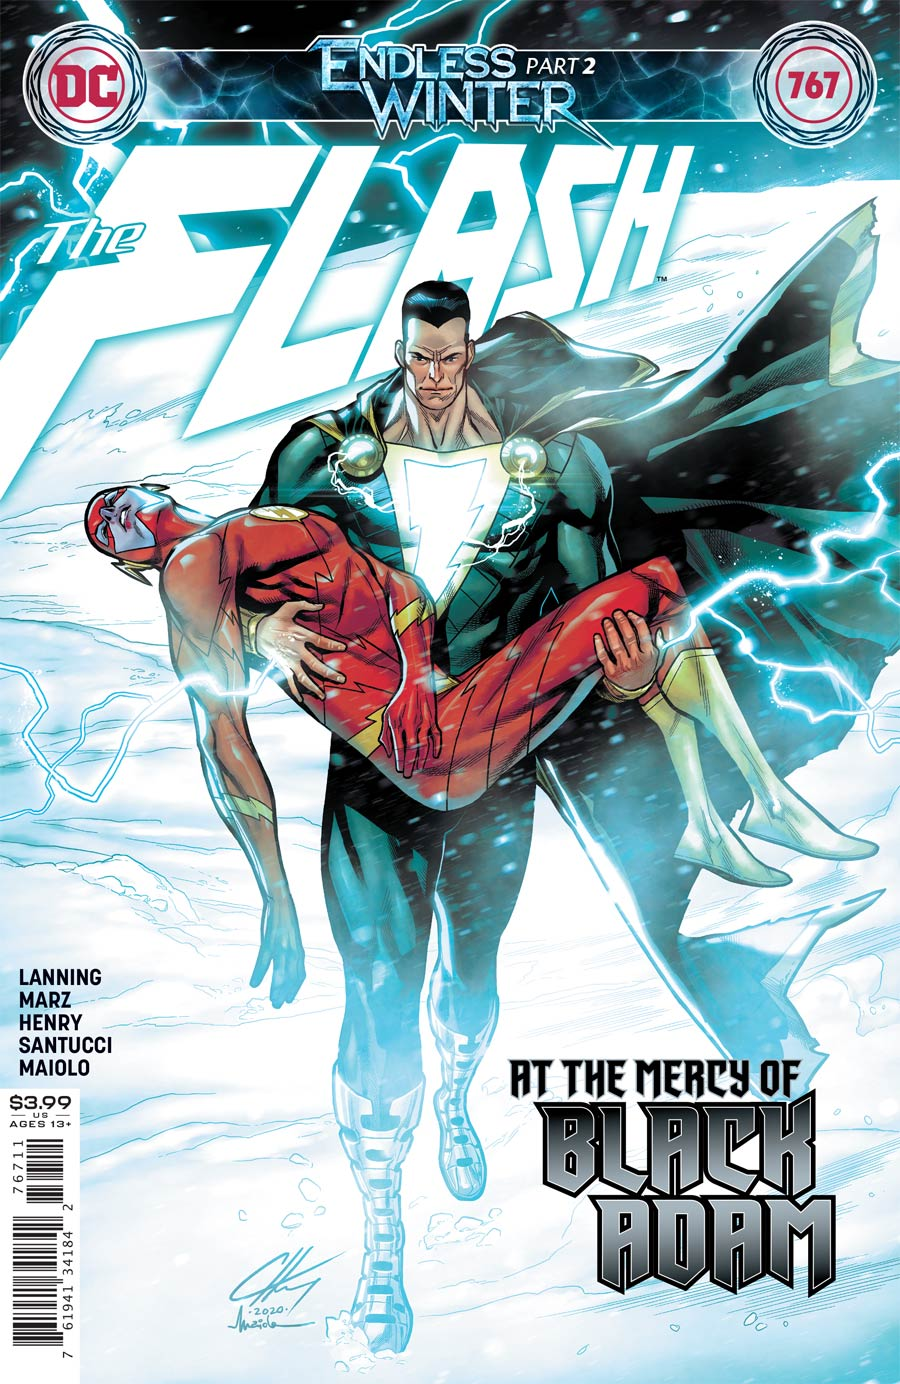 Flash Vol 5 #767 Cover A Regular Clayton Henry Cover (Endless Winter Part 2)